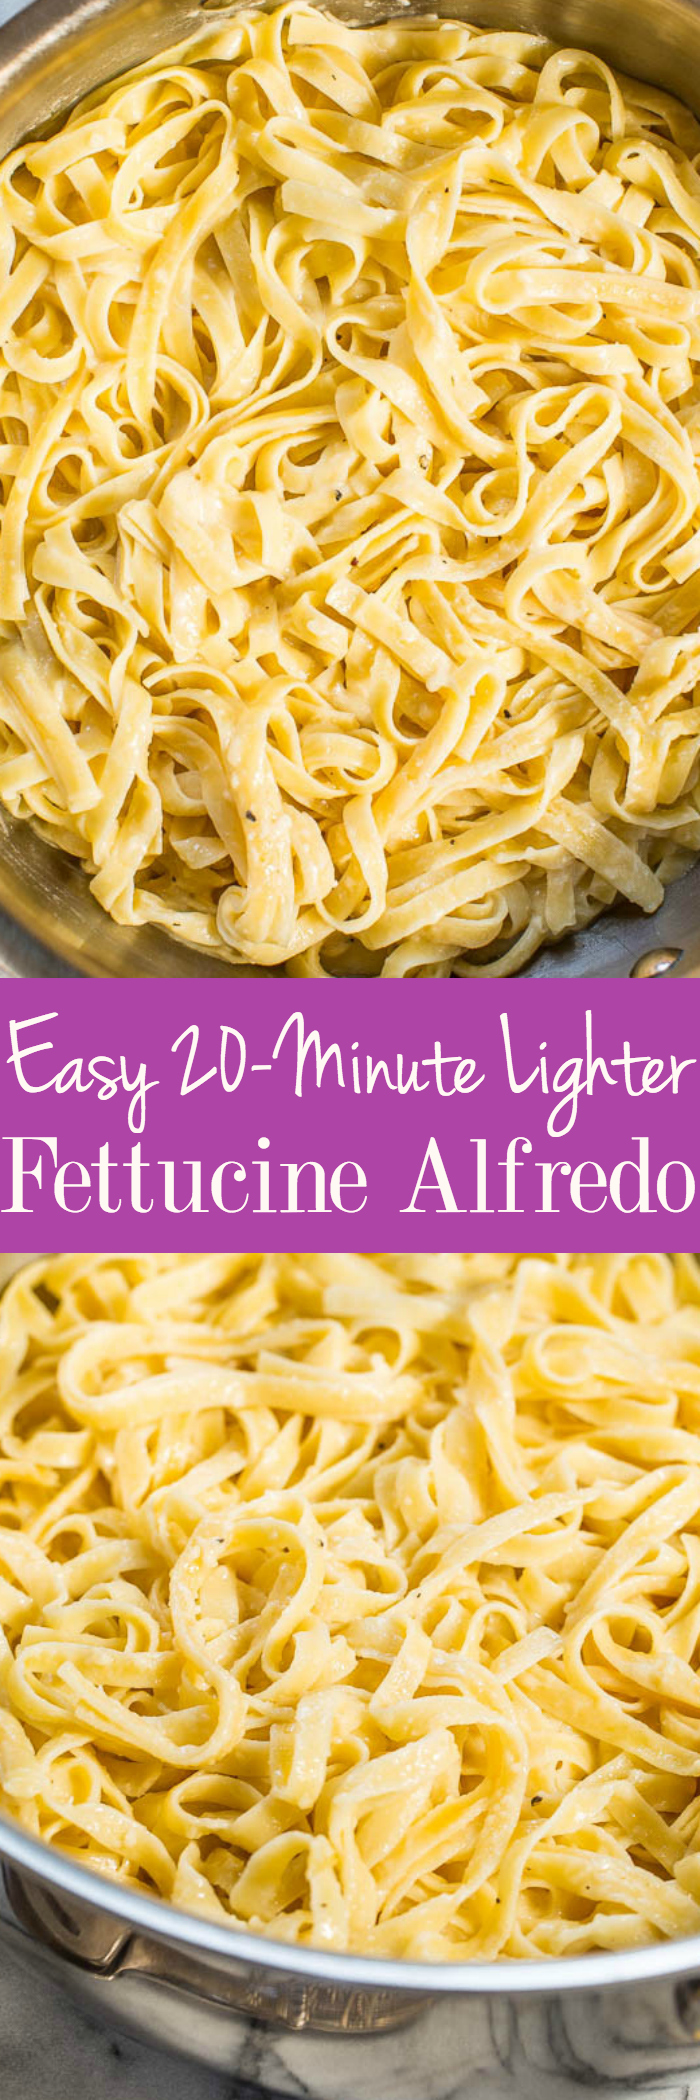 Fettucine Alfredo Easy 20 Minutes Lighter: The creamy, cheesy flavor you crave without the extra fat and calories! A quick and easy recipe that's perfect for the busy nights everyone loves!